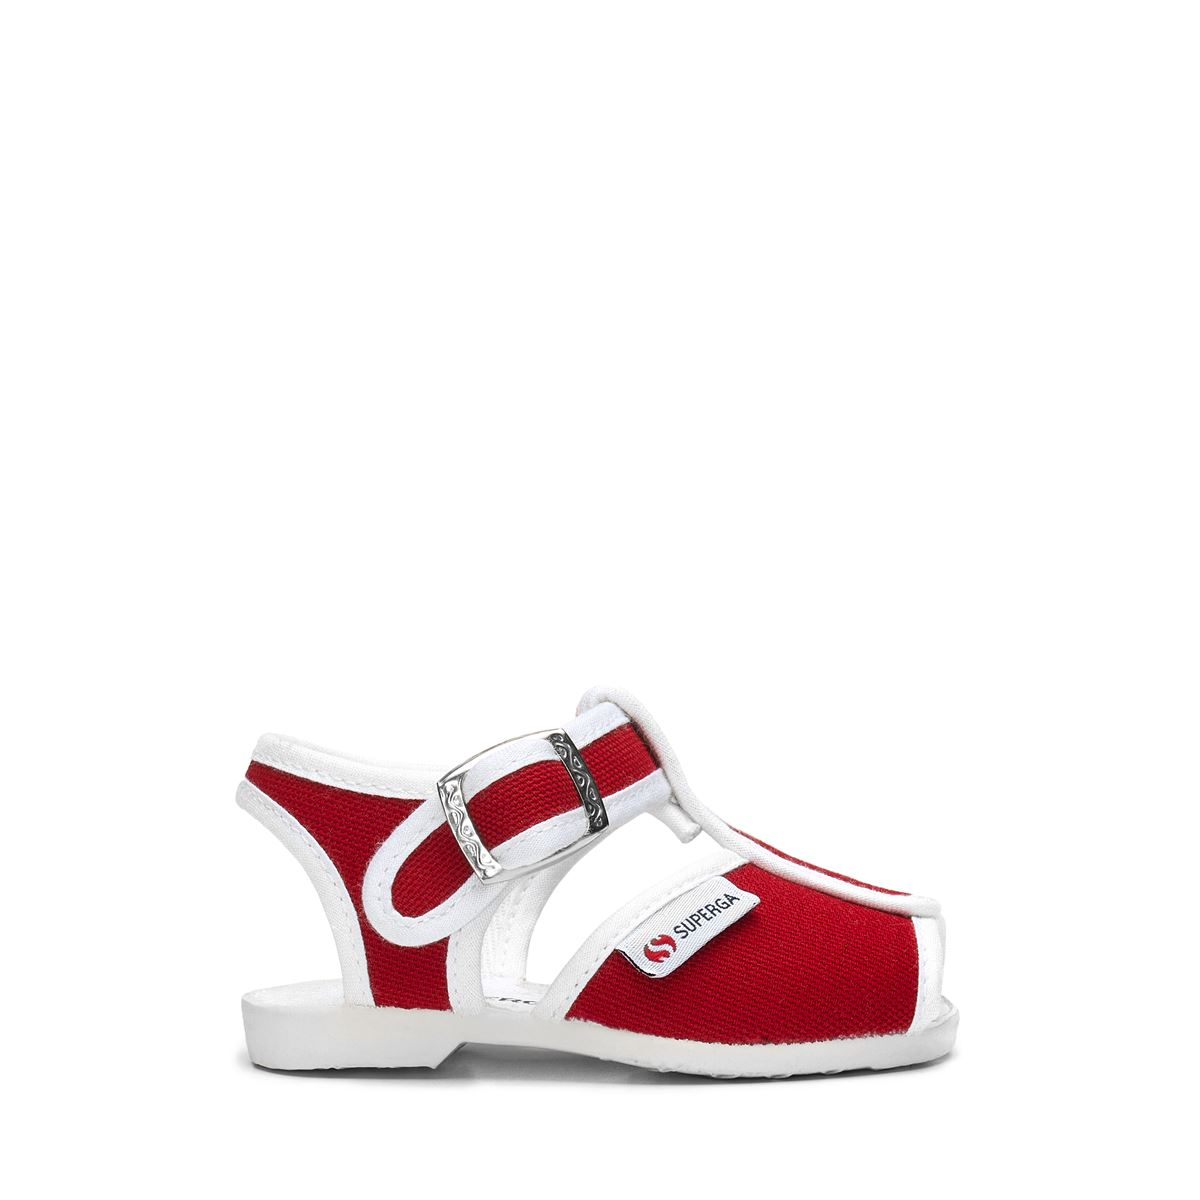 Italian Sandals Superga for kid men and women-S0026X0